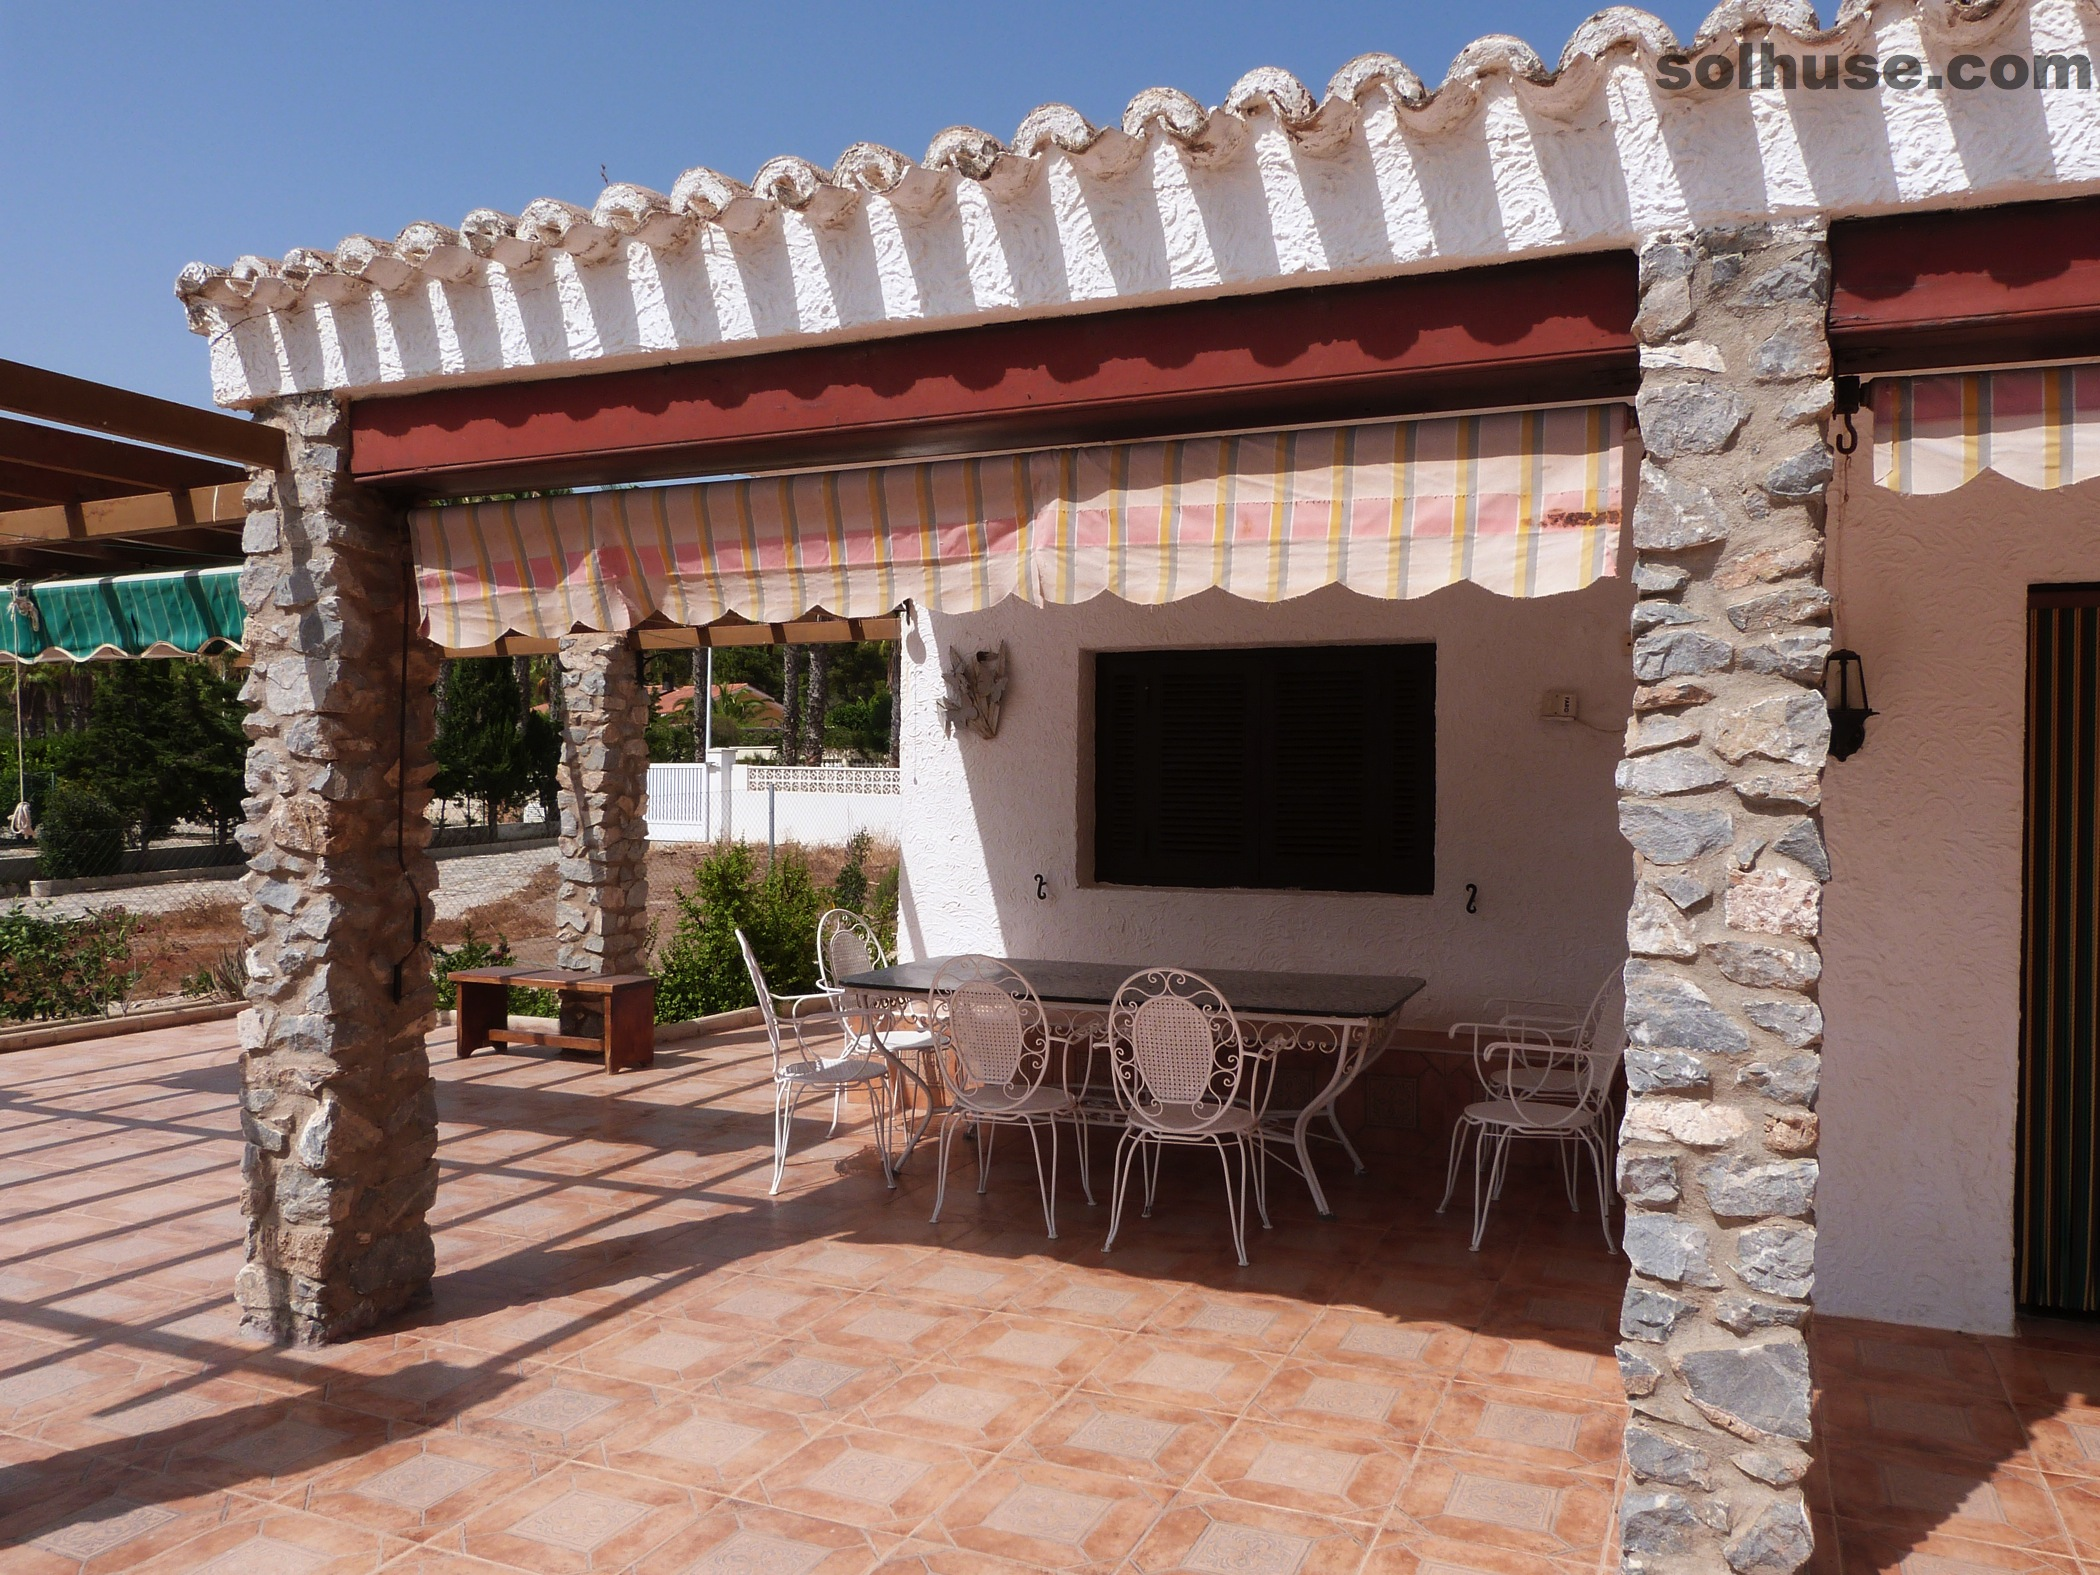 LARGE VILLA, PARTIAL SEA VIEWS, 6 BEDS, 3 BATHS IN SAN GINES